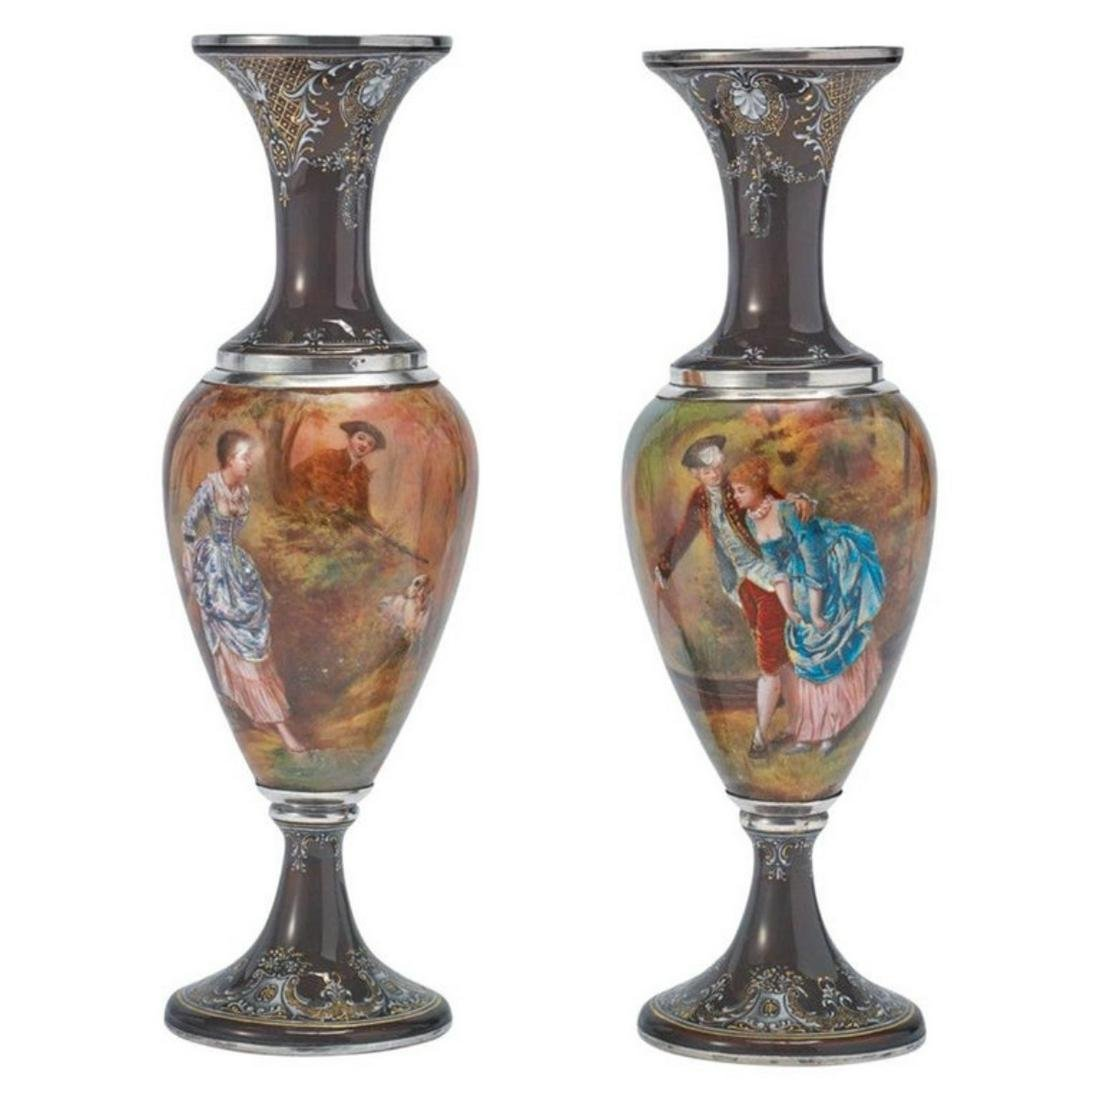 Pair of French Silver & Limoges Enamel Vases, Retailed